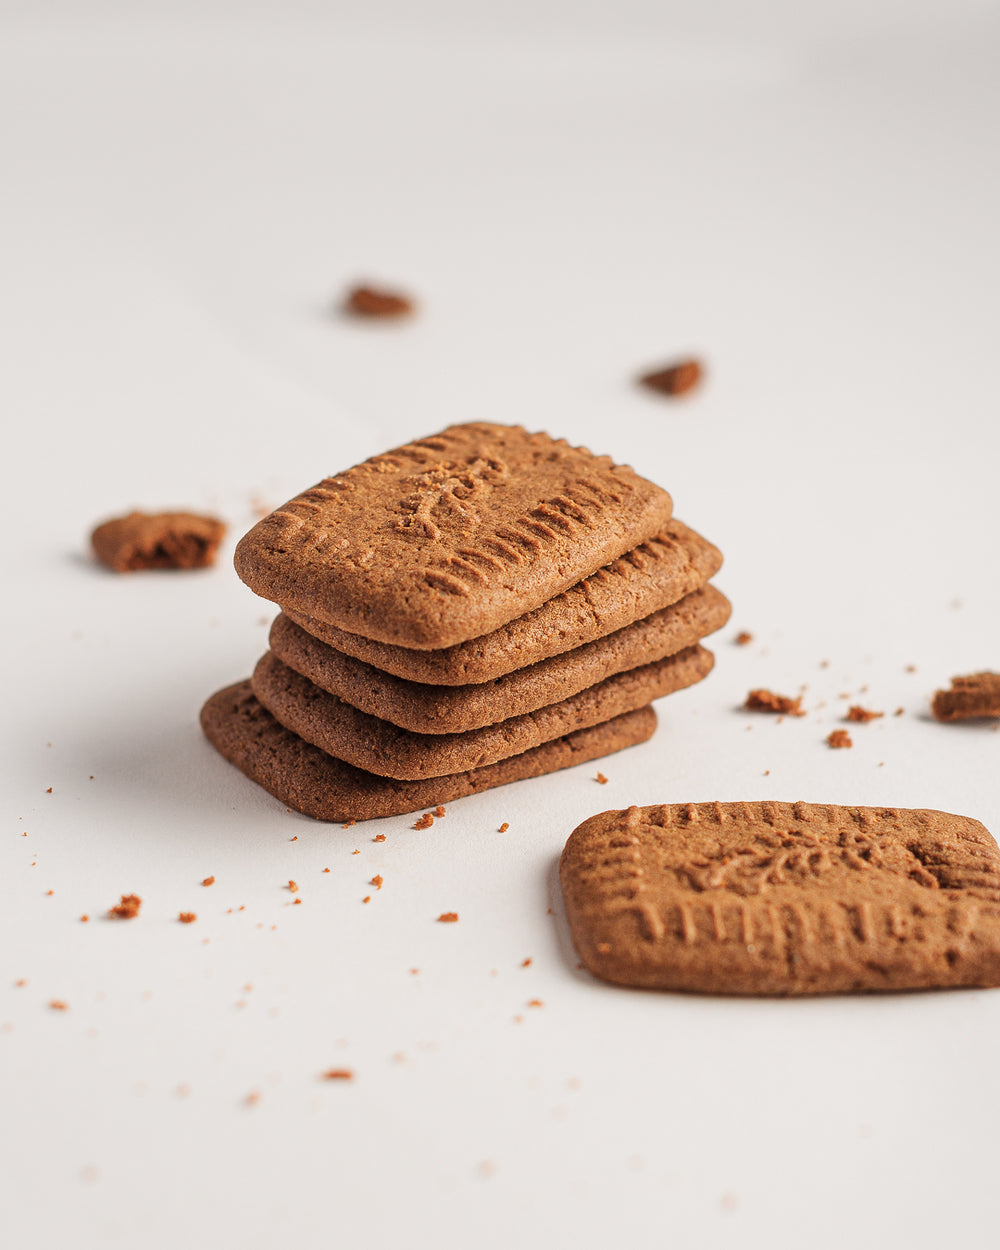 Spiced biscuit